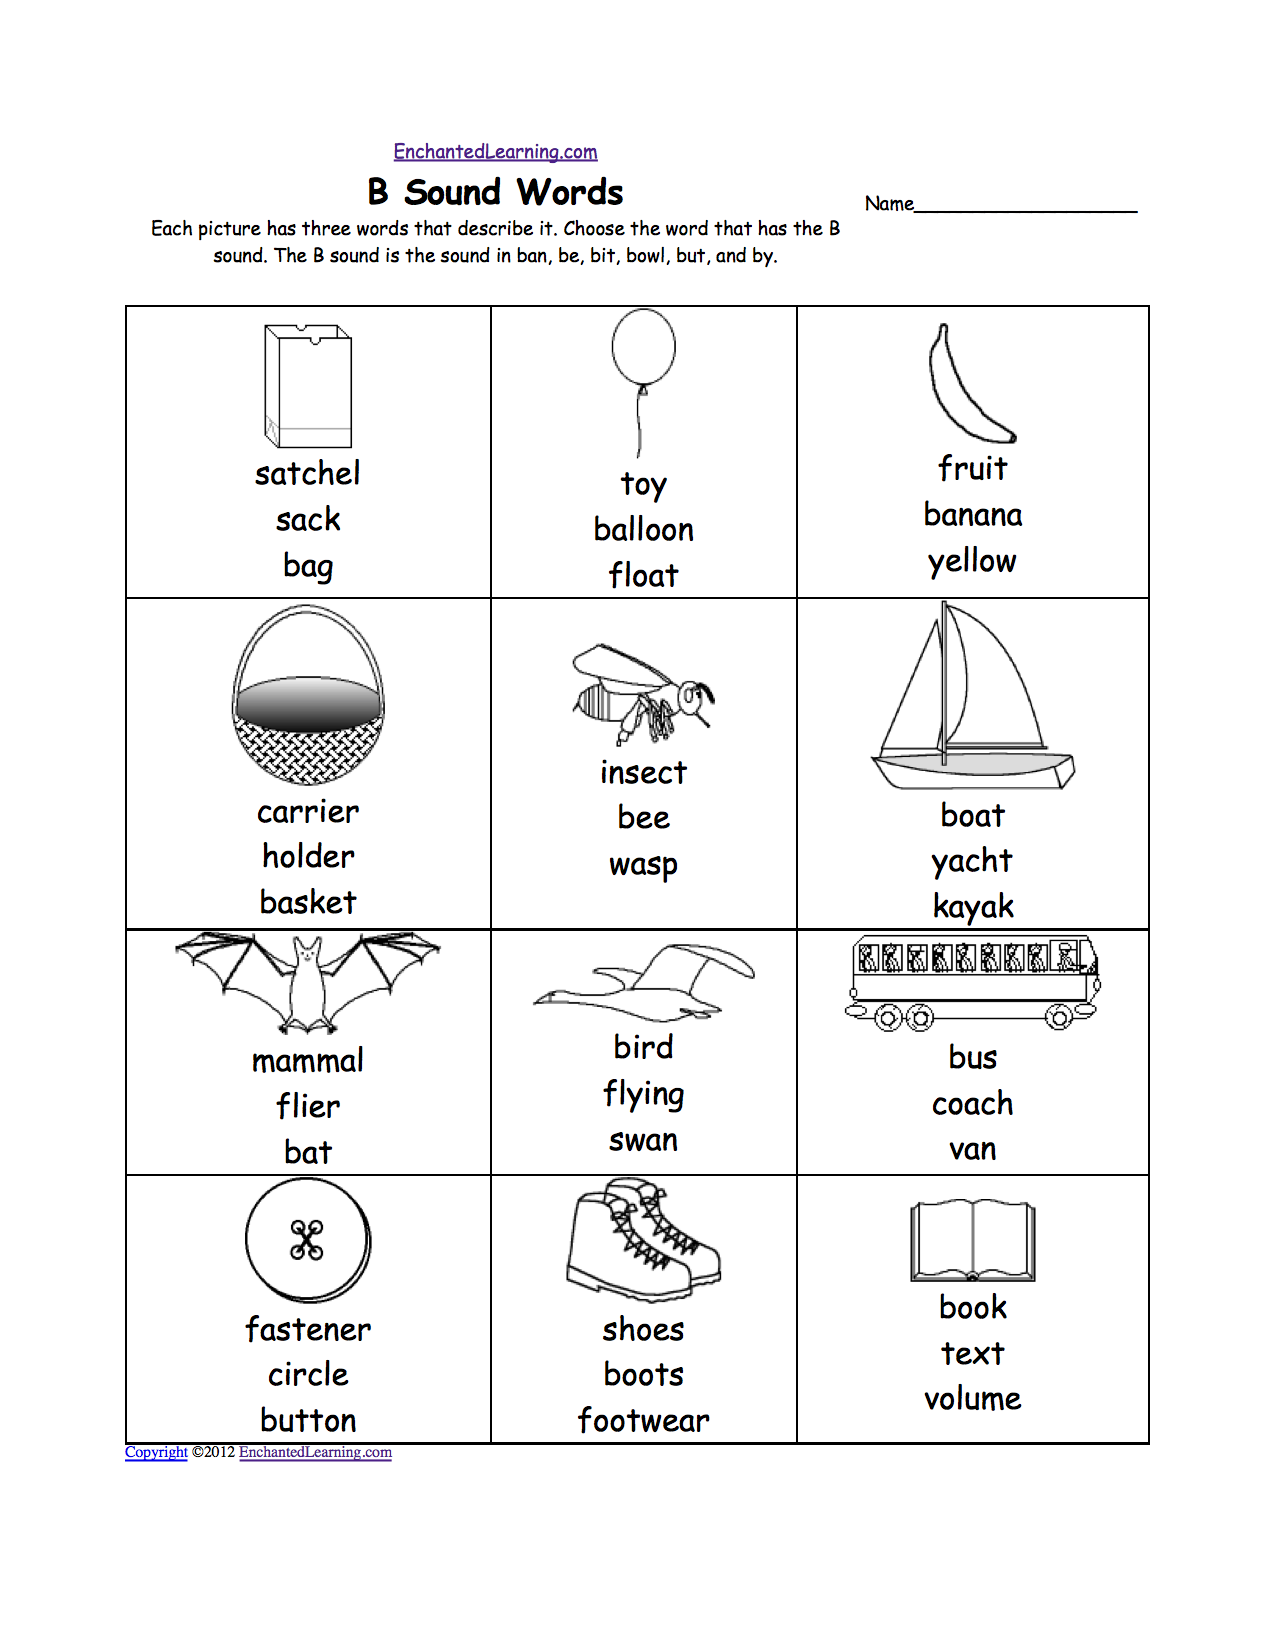 Weirdmailus  Inspiring Phonics Worksheets Multiple Choice Worksheets To Print  With Fascinating Quotbquot Sound Phonics Worksheet Multiple Choice Each Picture Has Three Words That Describe It Choose The Word That Has A Quotbquot Sound The Quotbquot Sound Is The Sound  With Beautiful St Worksheets Also Creating A Line Plot Worksheet In Addition Combine Data From Multiple Worksheets And Free Printable Synonym Worksheets As Well As Rd Grade Preposition Worksheets Additionally Language Arts Worksheets For Middle School From Enchantedlearningcom With Weirdmailus  Fascinating Phonics Worksheets Multiple Choice Worksheets To Print  With Beautiful Quotbquot Sound Phonics Worksheet Multiple Choice Each Picture Has Three Words That Describe It Choose The Word That Has A Quotbquot Sound The Quotbquot Sound Is The Sound  And Inspiring St Worksheets Also Creating A Line Plot Worksheet In Addition Combine Data From Multiple Worksheets From Enchantedlearningcom